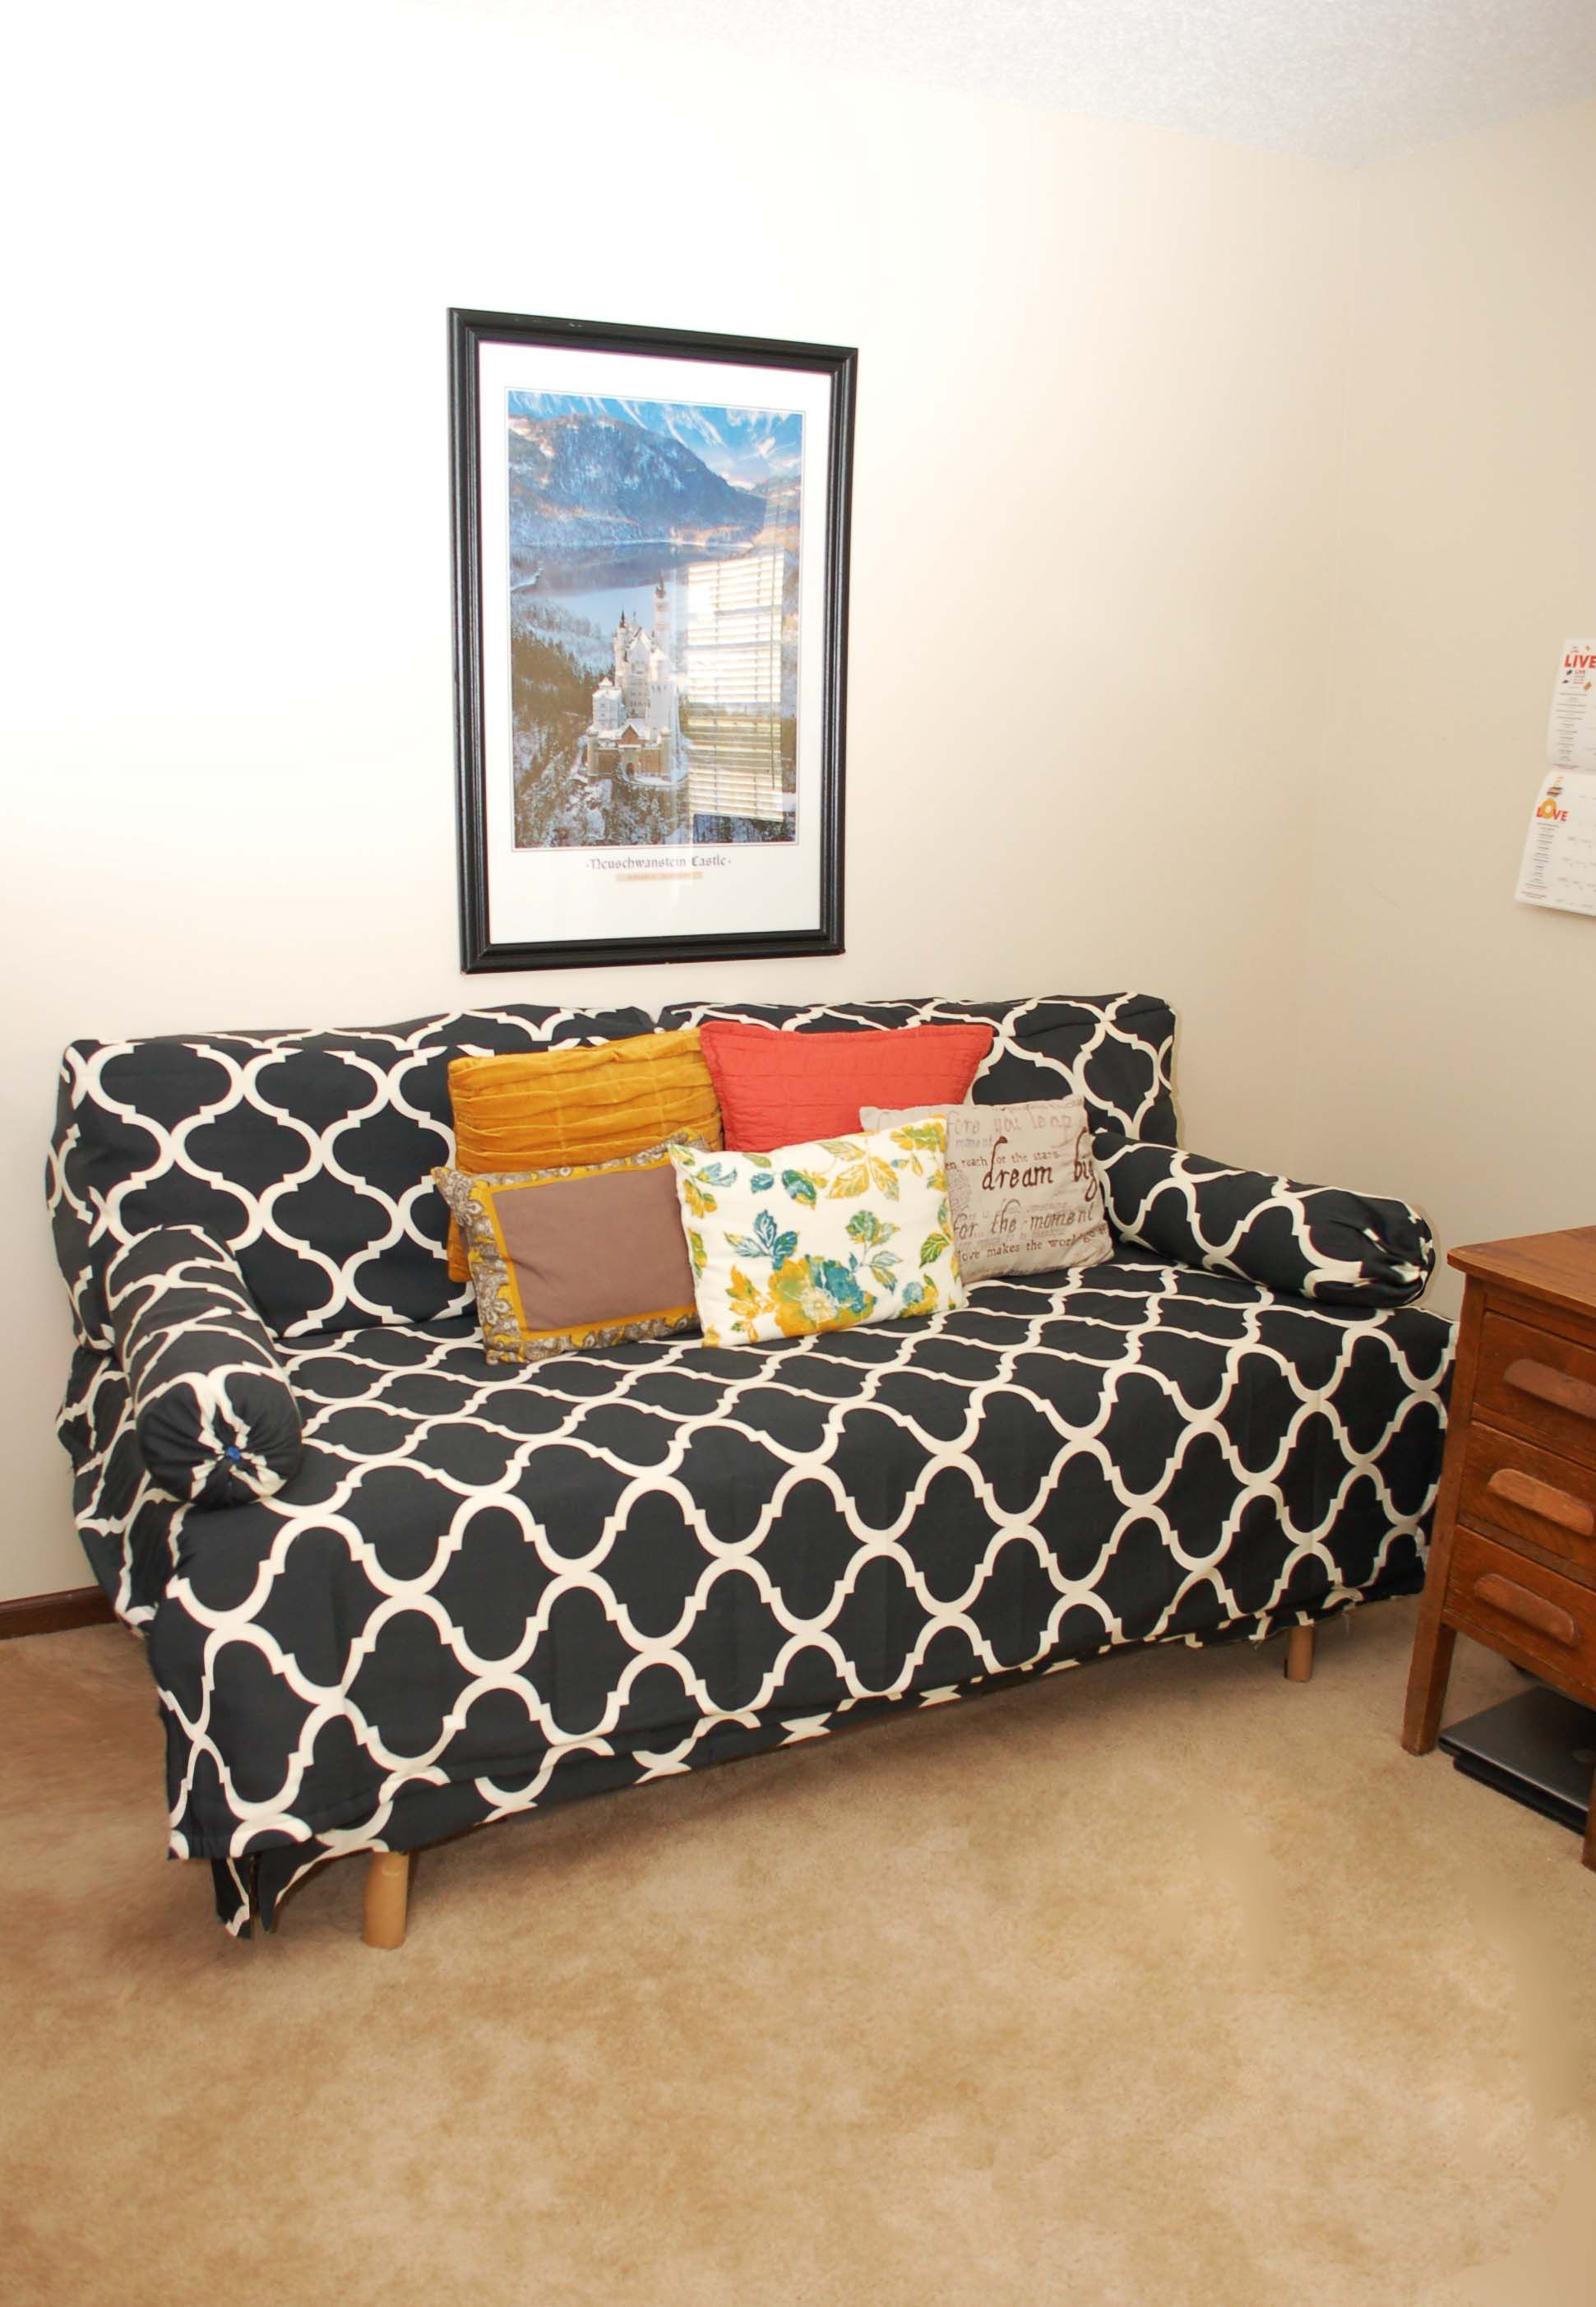 Twin Bed Sofa Couch High Density Foam For Cushions India Made To Look Like A Do This By Making